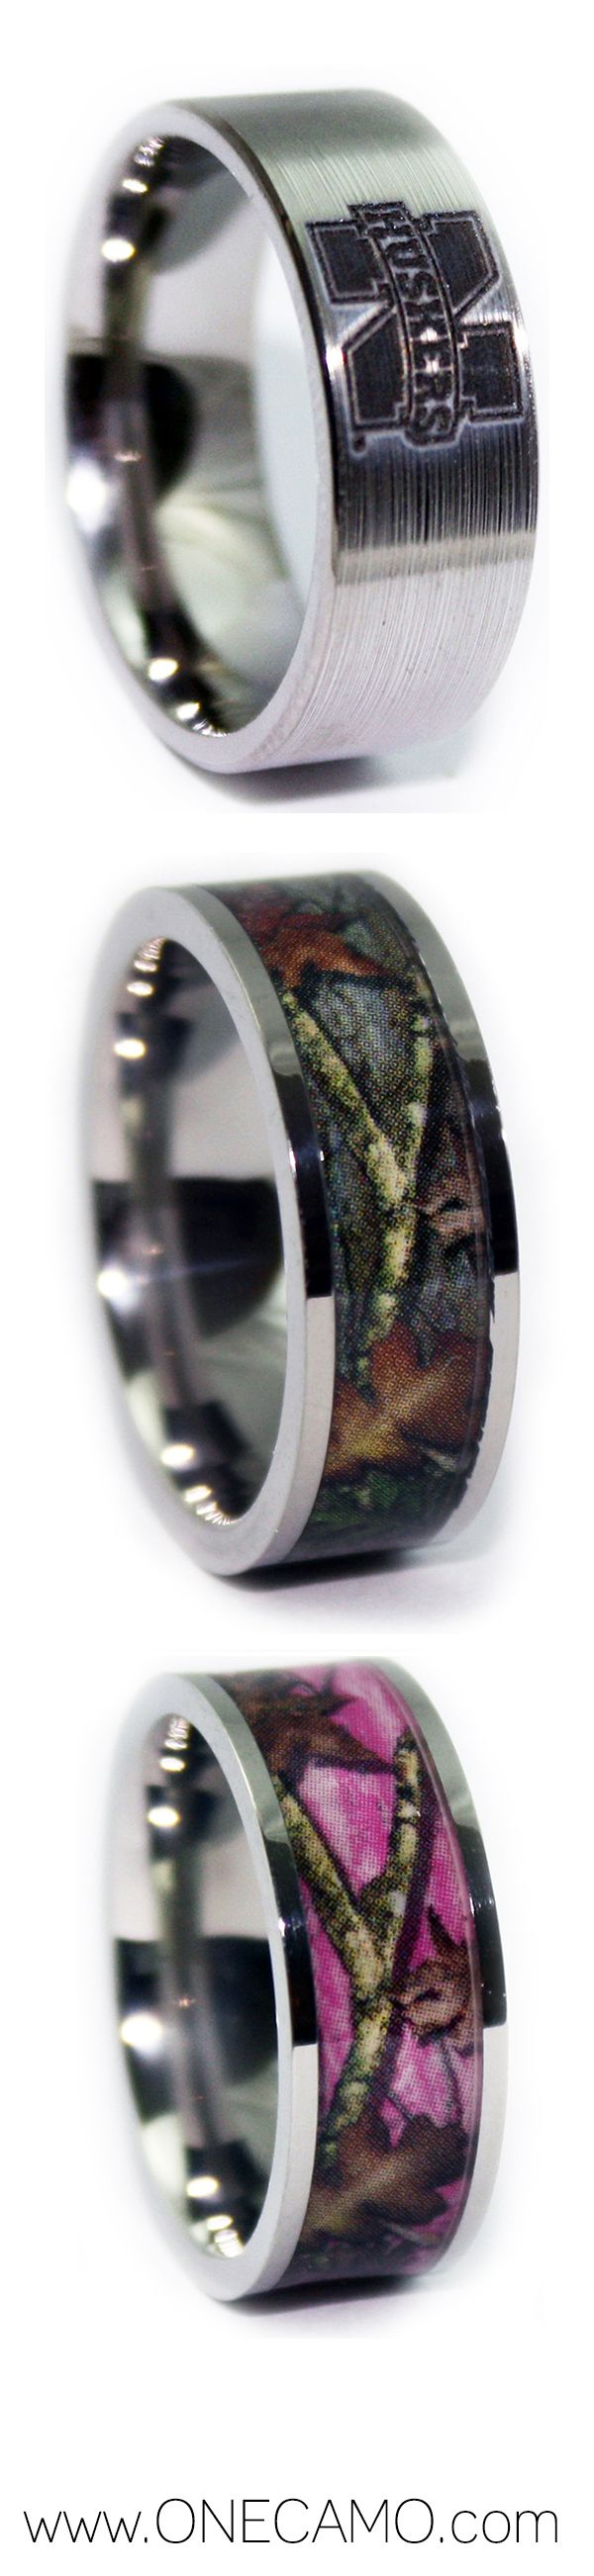 Best Electrician Ceramic Bands Blaze Orange Camo Rings CZ Diamond Camo Engagement Rings and so